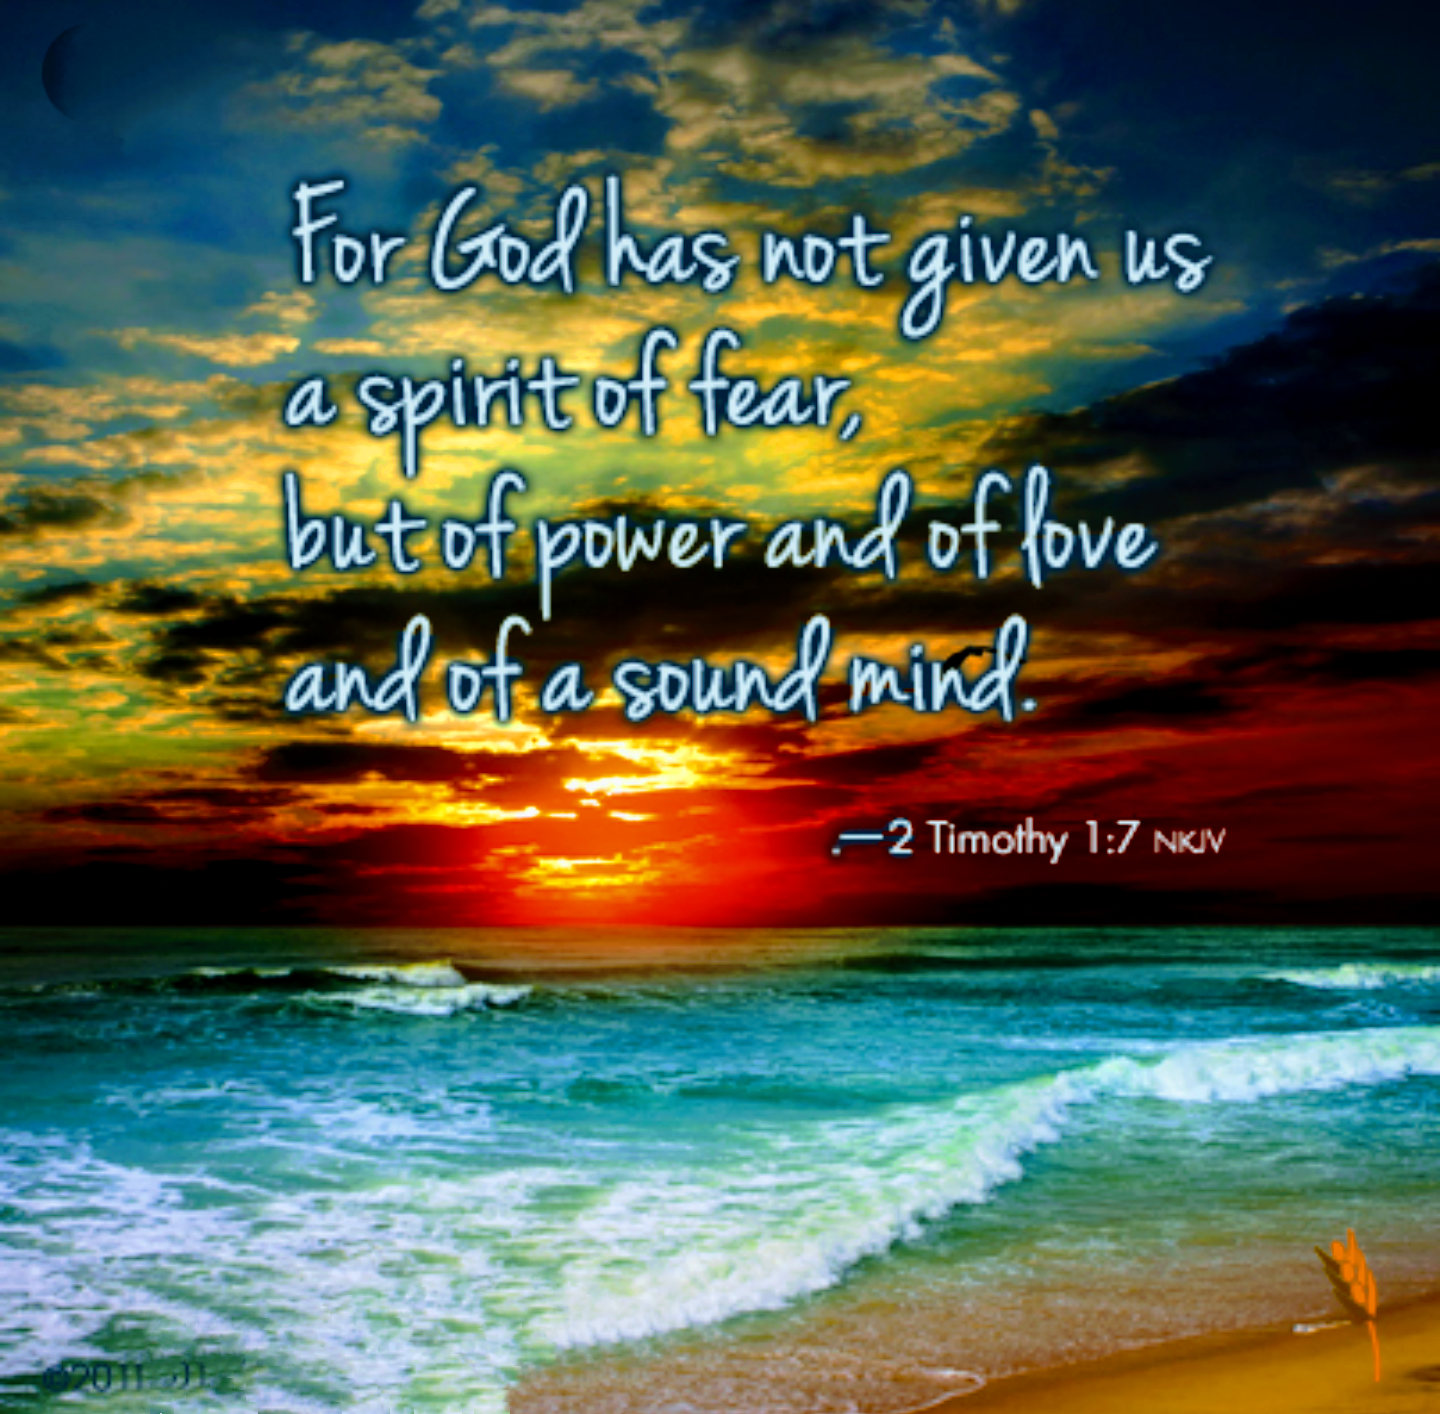 For God hath not given us the spirit of fear, but of power